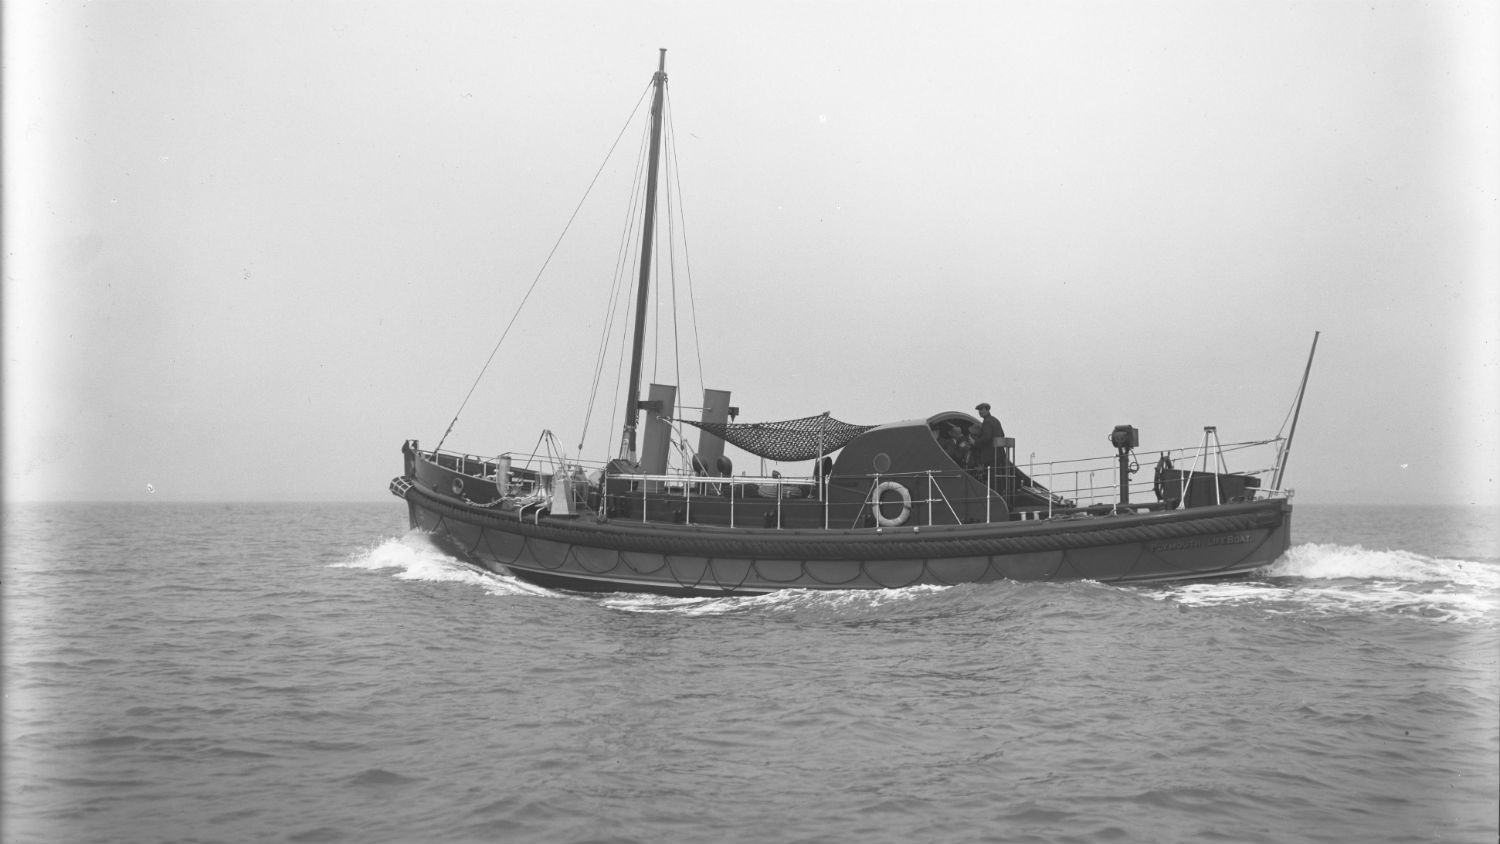 Black and white image of Plymouth lifeboat, Robert and Marcella Beck, while on trials